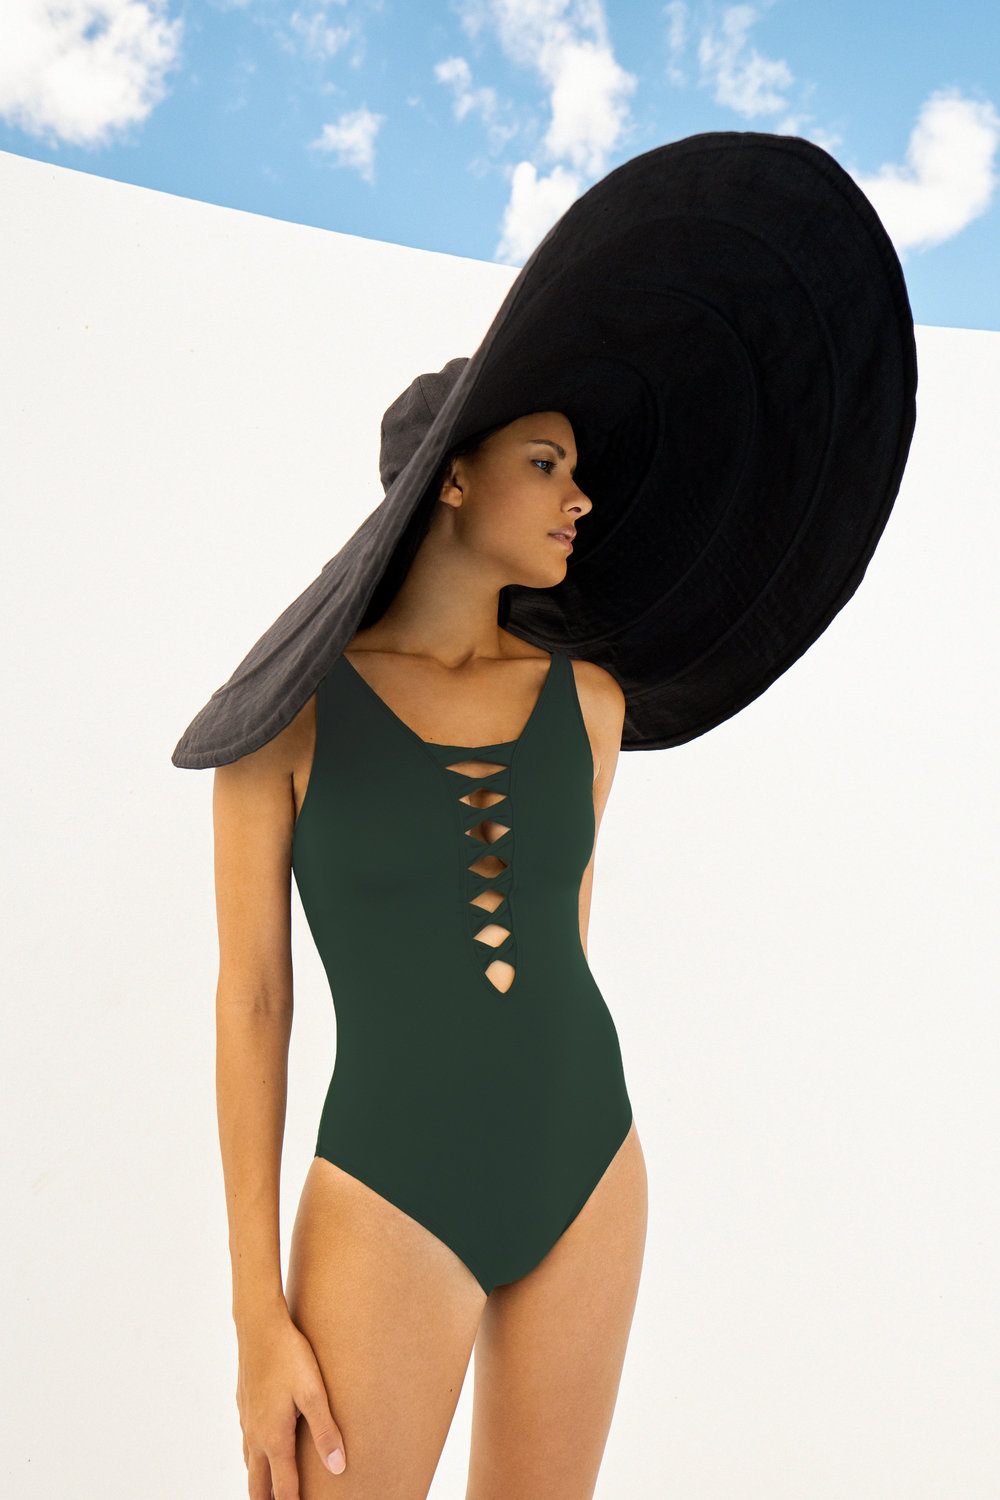 73008fb7c04 Swimsuit Shopping: 10 Tips + Trends For Rocking Your Look Every.Single.Day